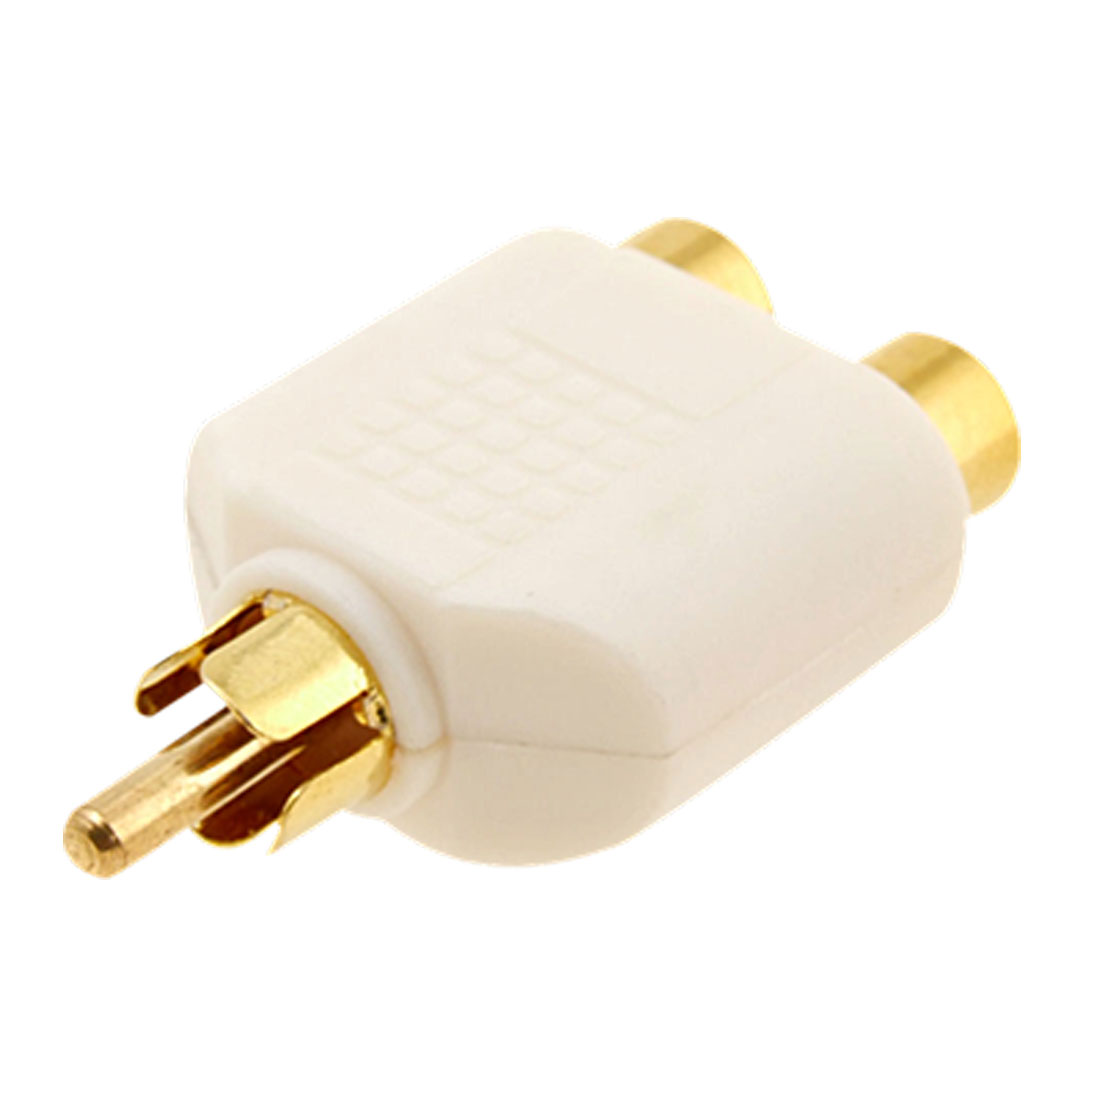 1 Male to 2 Female Digital RCA AV Splitter Connector Adapter